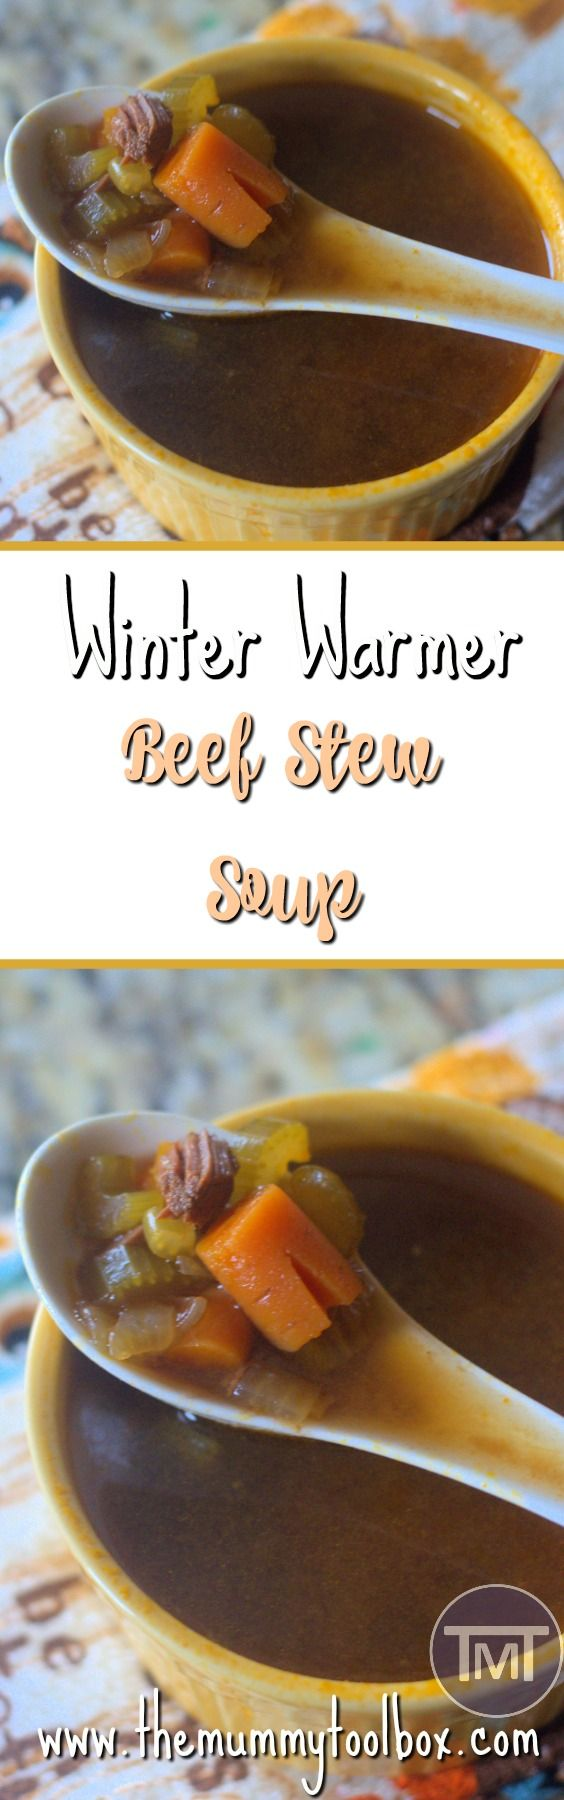 Winter Warmer, Beef Stew soup for warming you from the inside. Delicious recipe that is easy and yummy!